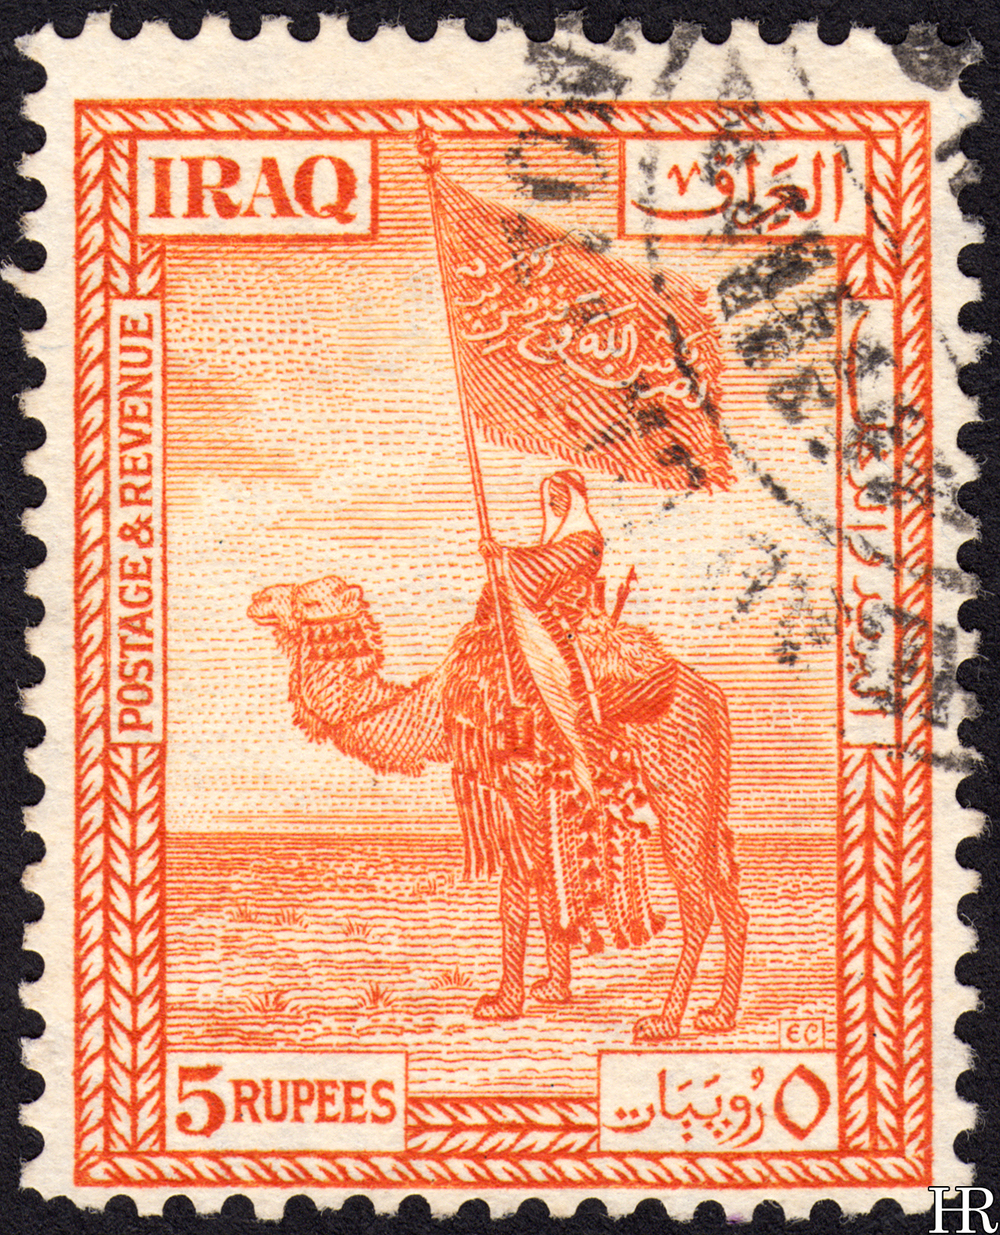 5 rupees - Dulaim Camel Corps